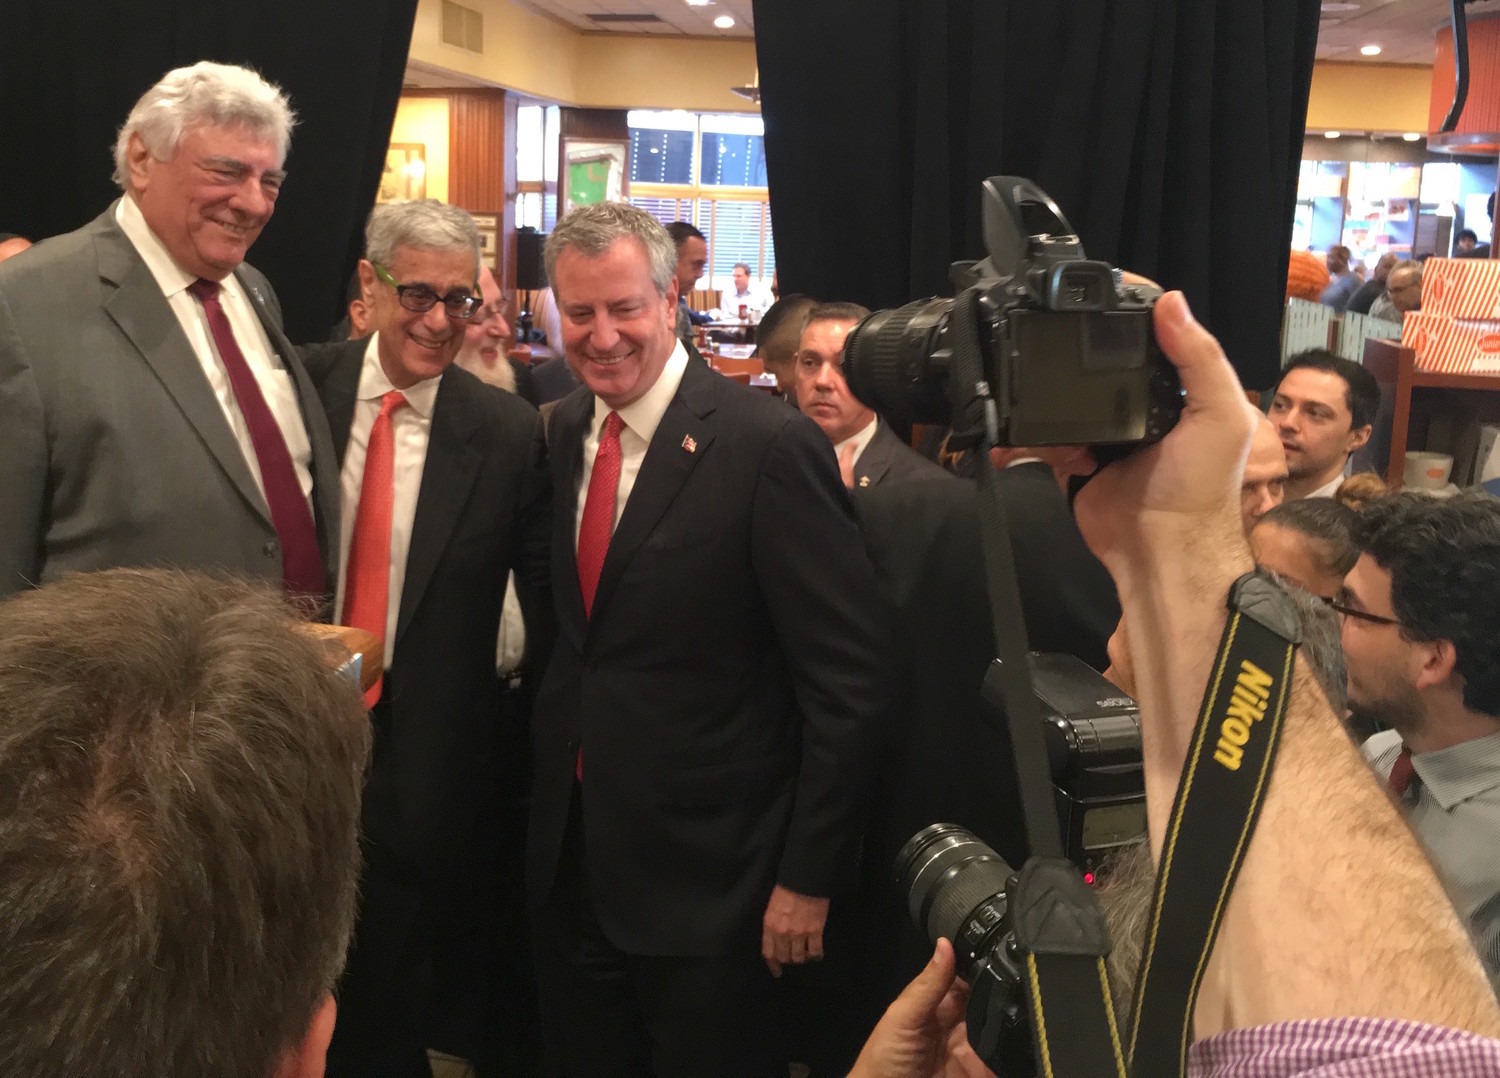 Steve Cohn is flanked by Mayor Bill deBlasio and Kings County Democrats chairman Frank Seddio.